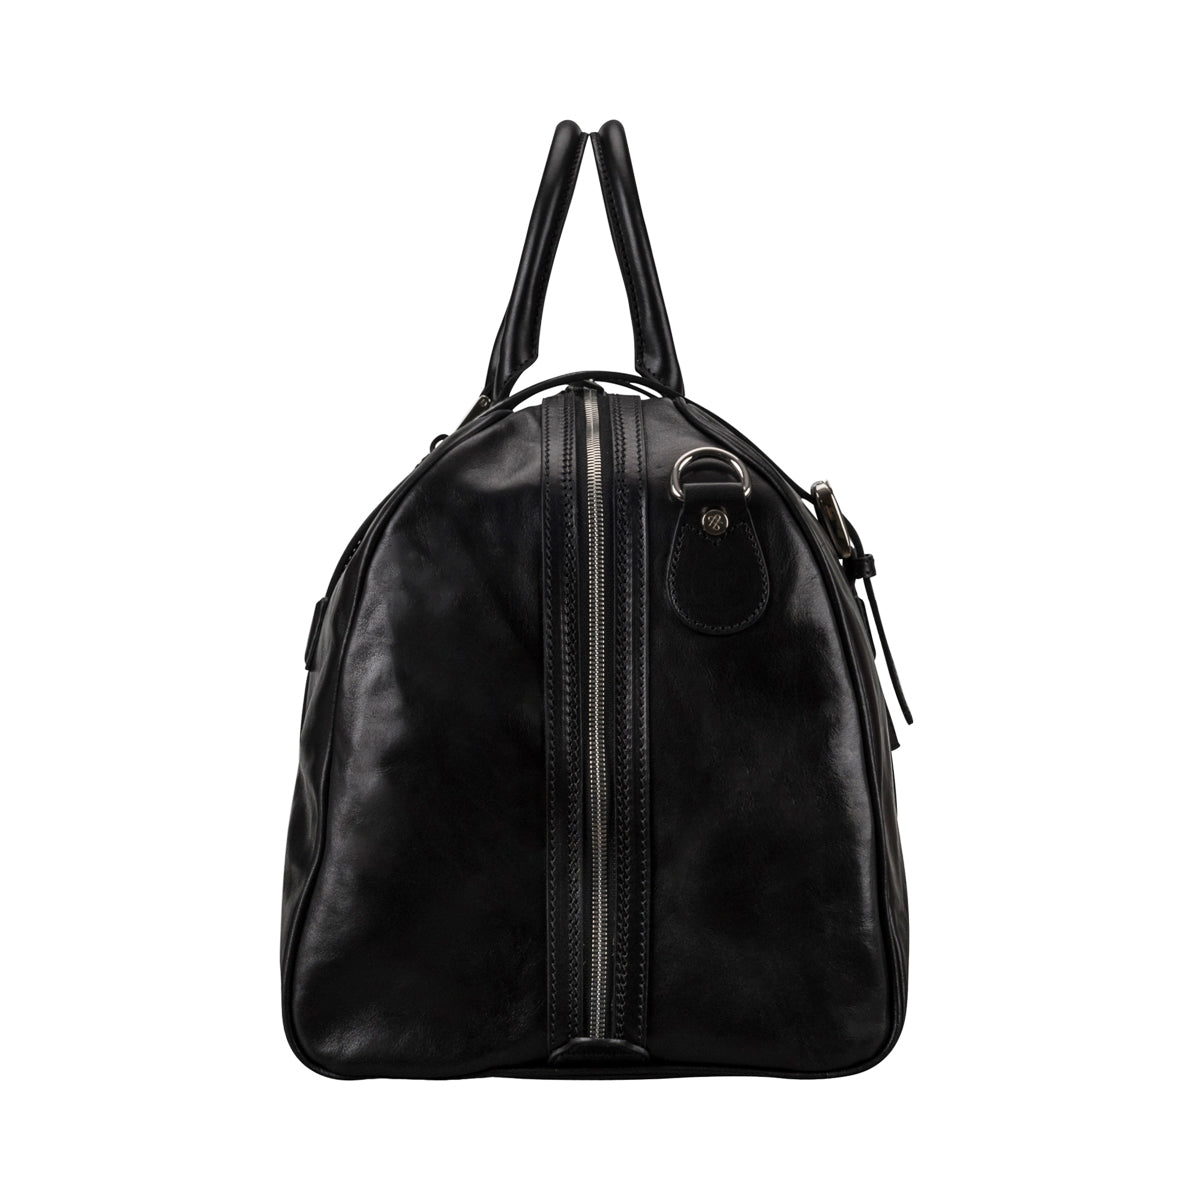 Image 3 of the 'Flero' Black Veg-Tanned Leather Holdall